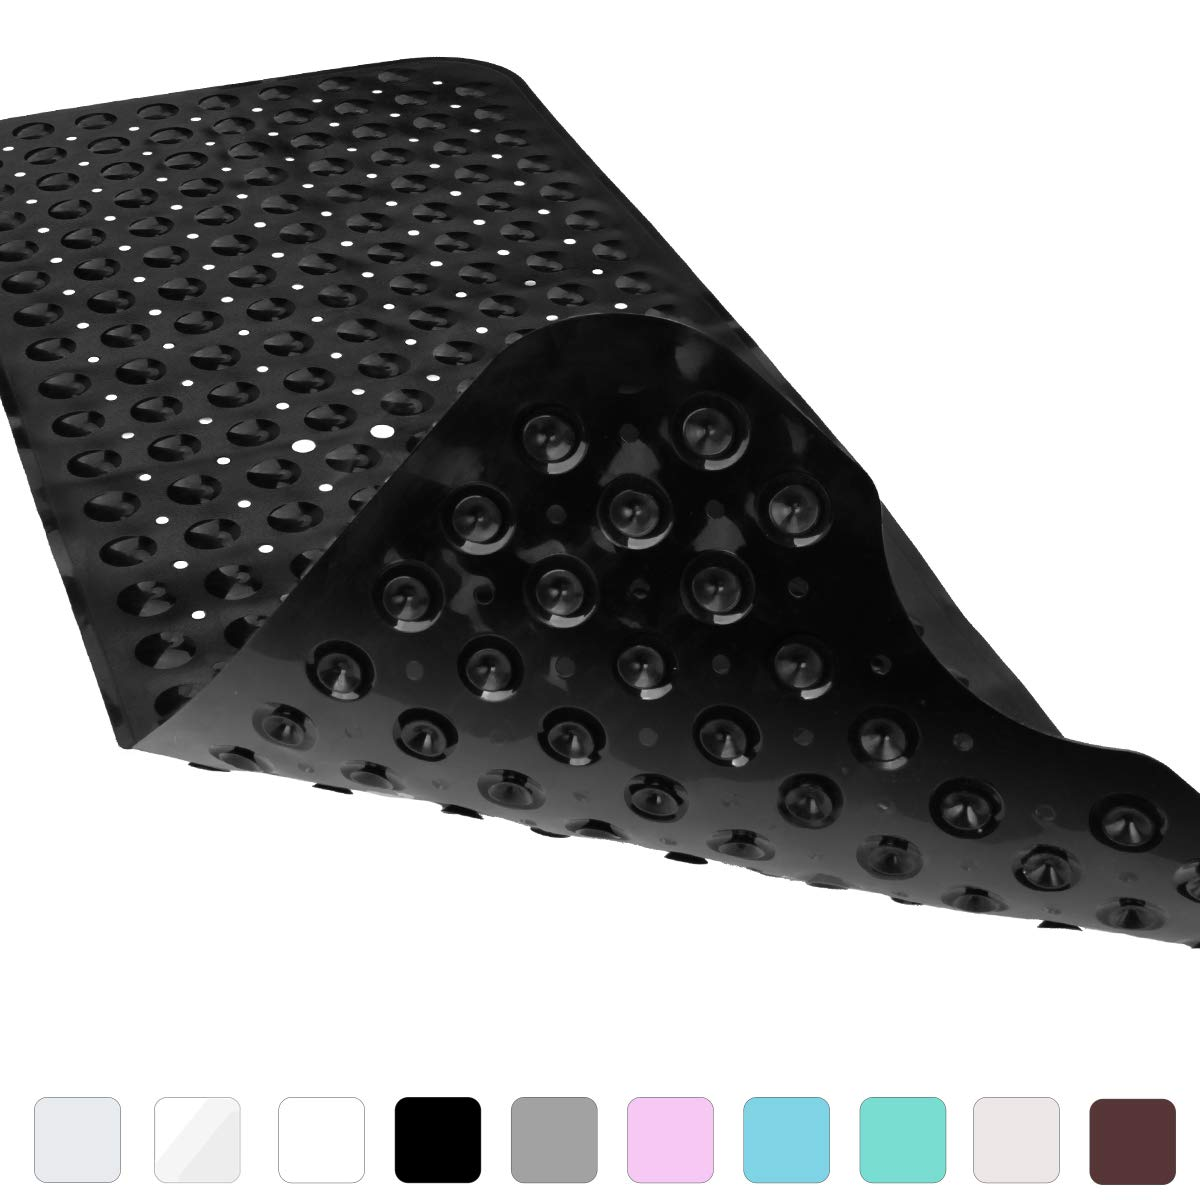 Yimobra Original Bath Tub and Shower Mat Extra Long Anti Bacterial Phthalate Free Latex and Machine Washable Large Mats Materials XL 40 x 16 Inch Black